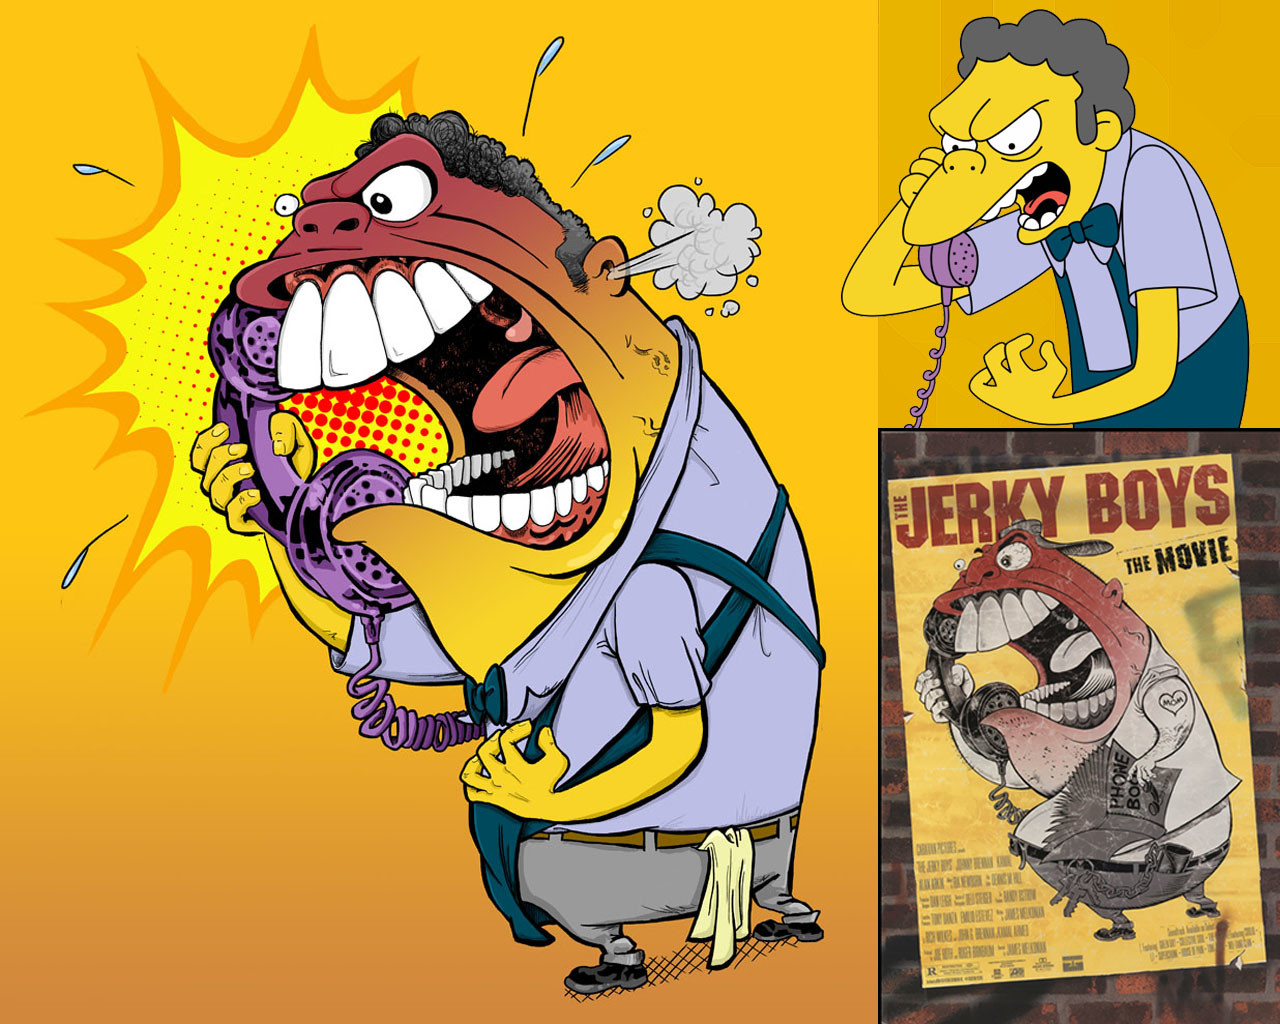 Jerky Moe, with references